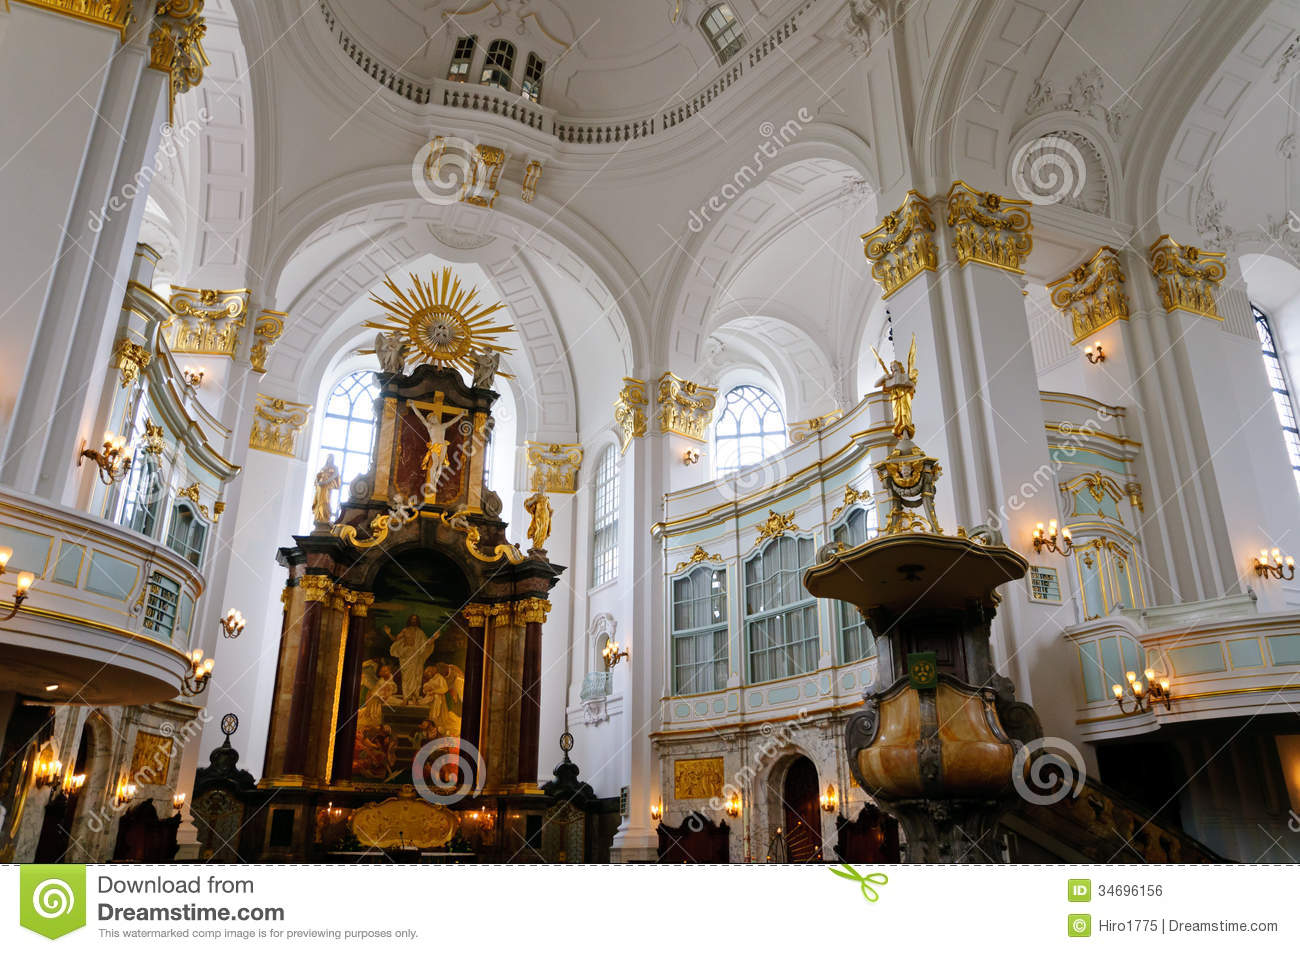 st michael kirche in hamburg lizenzfreies stockbild bild 34696156. Black Bedroom Furniture Sets. Home Design Ideas